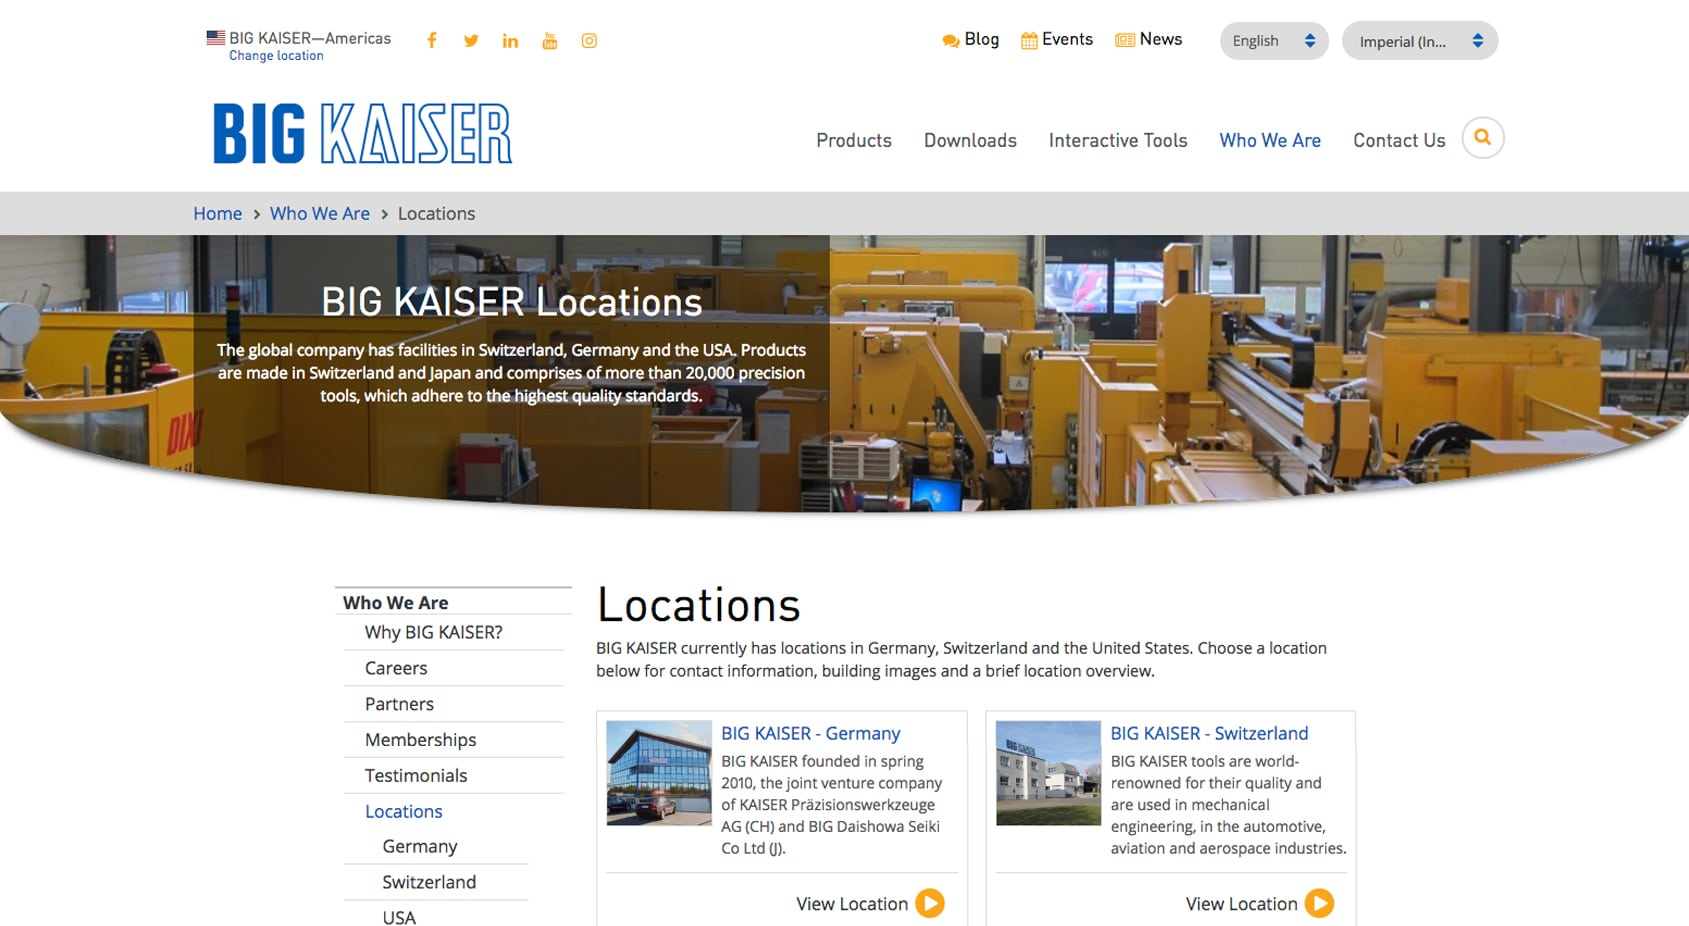 Big Kaiser Locations Web page